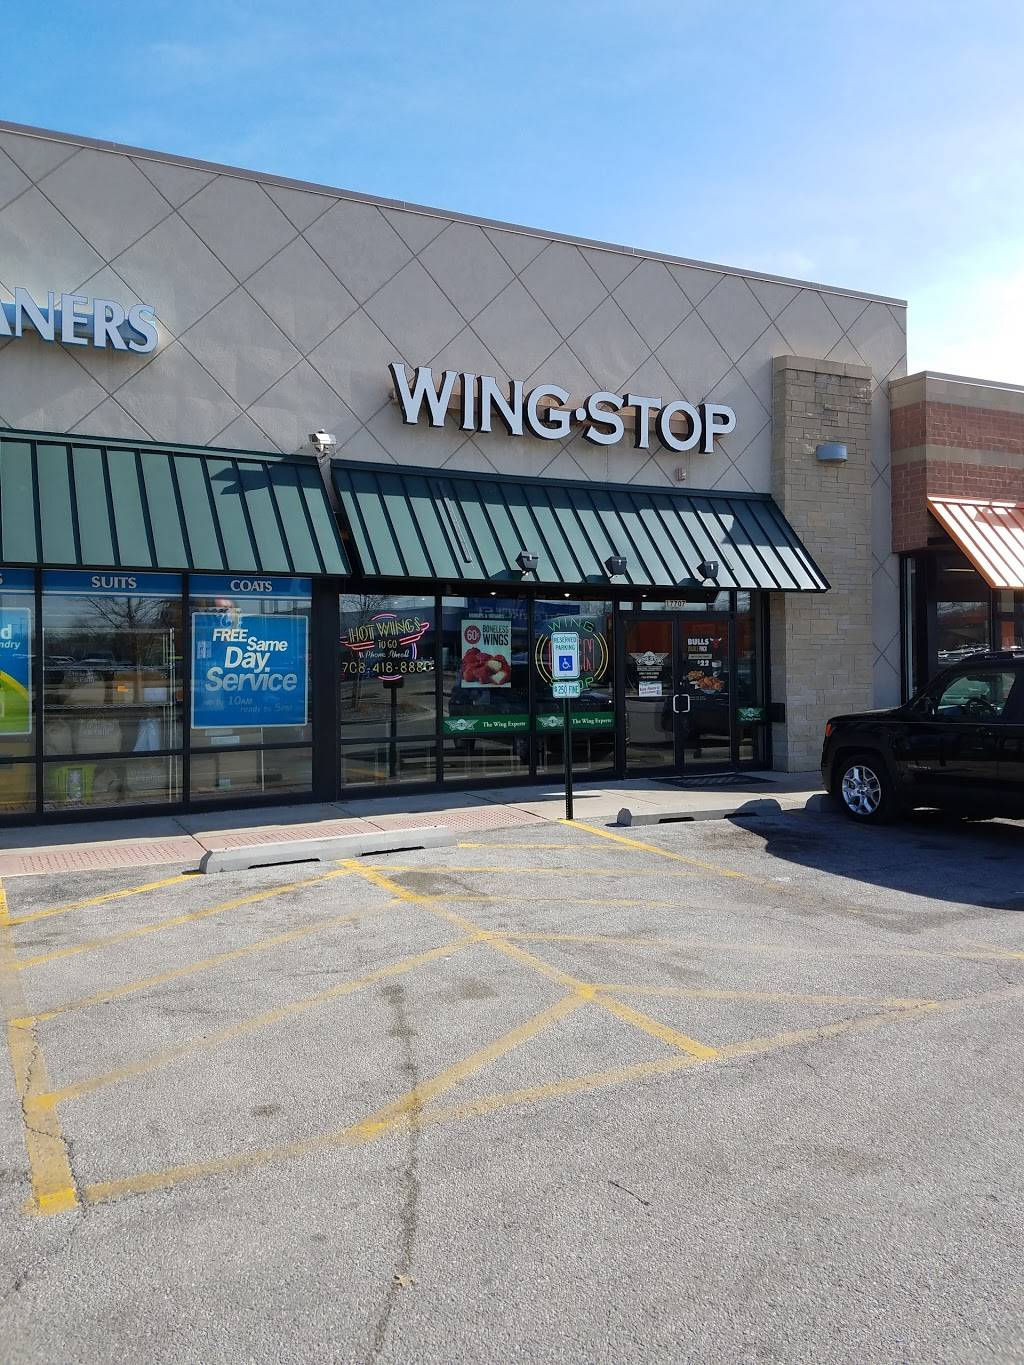 Wingstop | restaurant | 17707 Torrence Ave, Lansing, IL 60438, USA | 7084188880 OR +1 708-418-8880